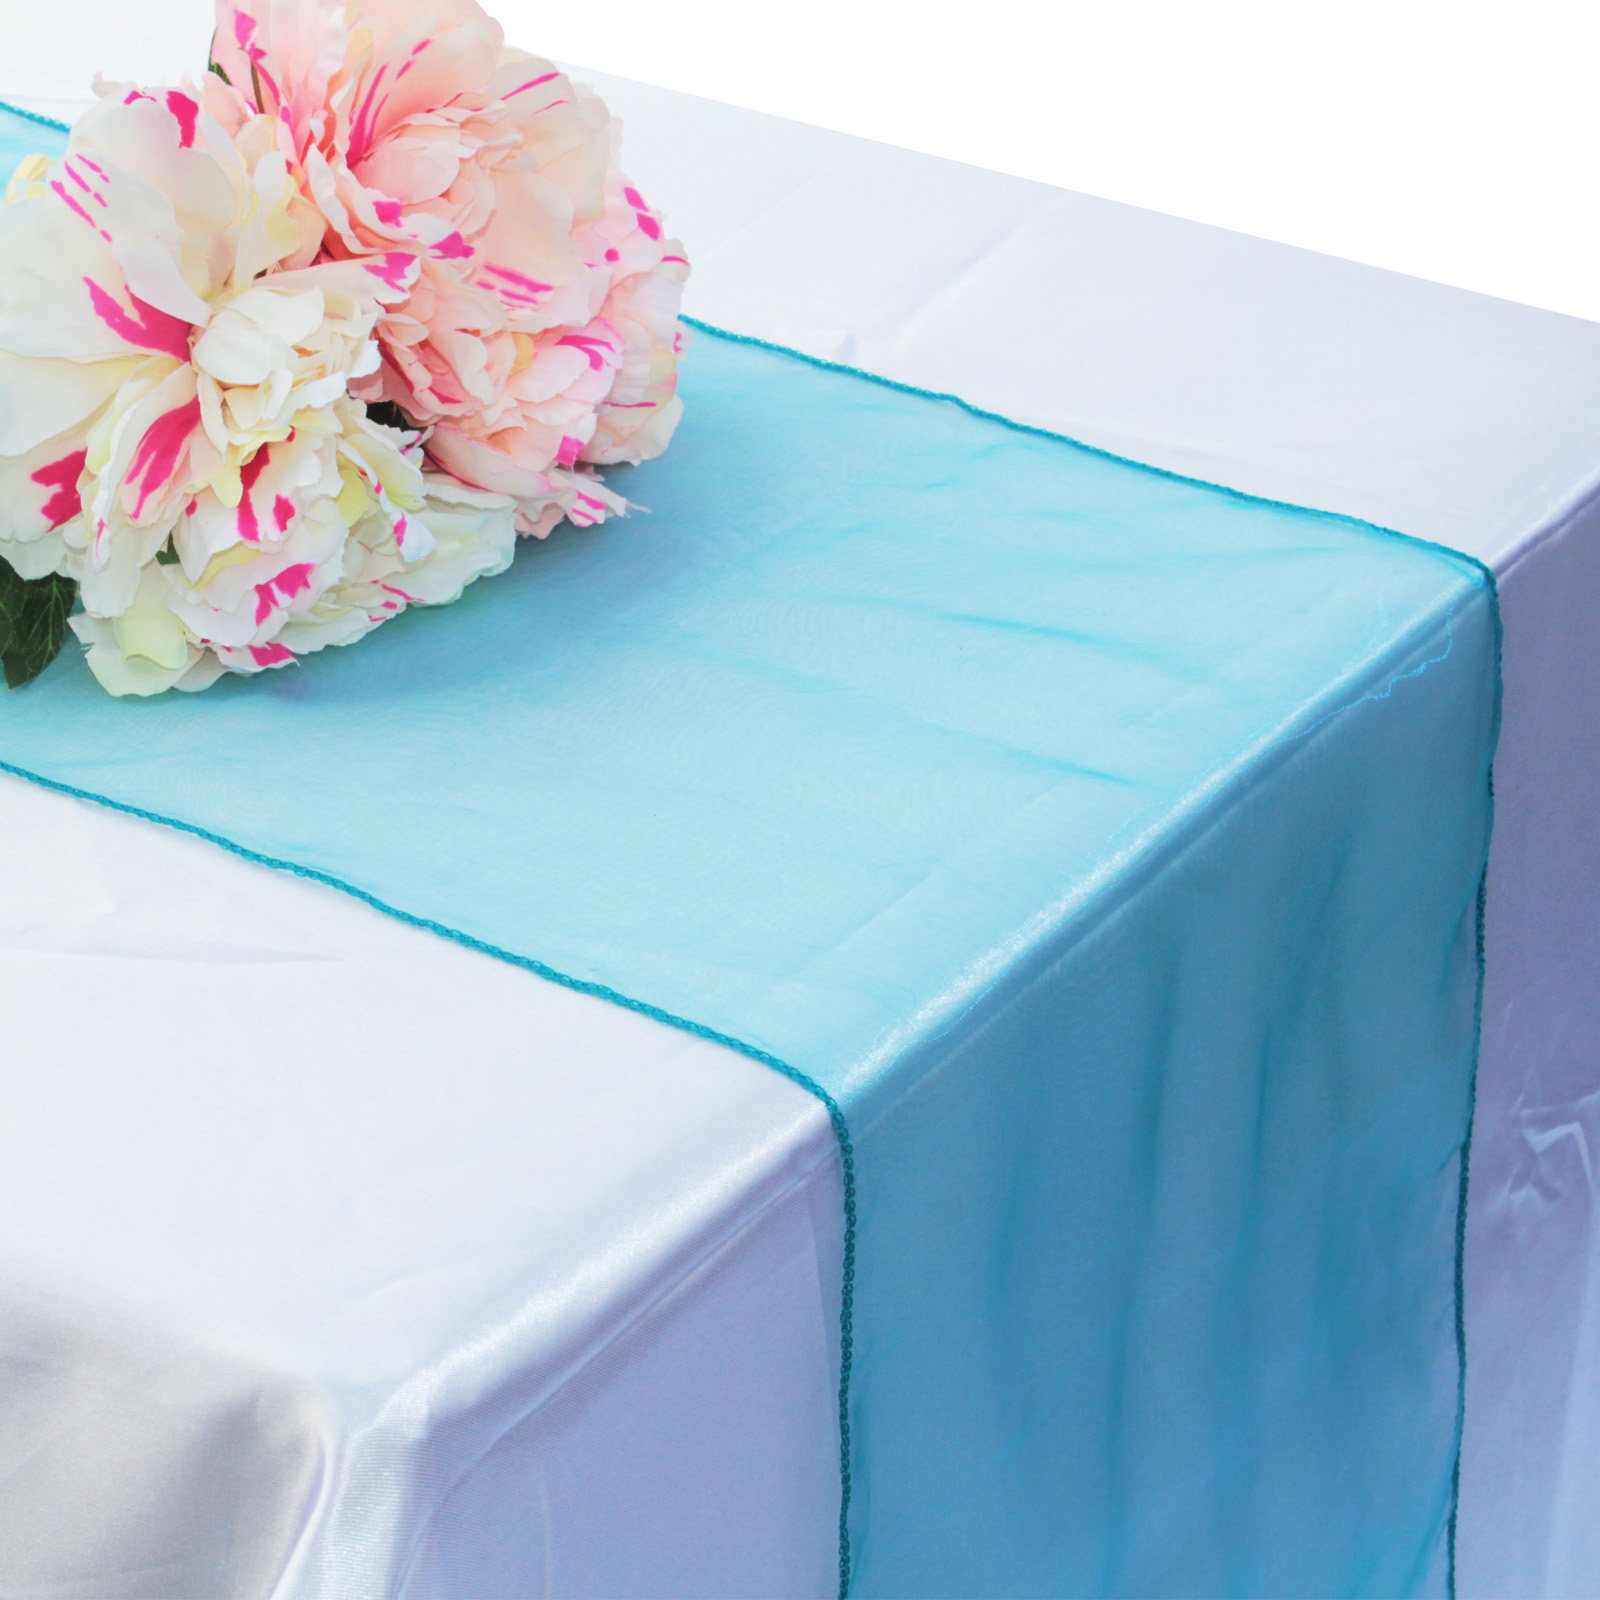 1pcs 30x275cm Organza Table Runner Soft Sheer Fabric For Wedding Party Banquet Table Decoration Chair Bows Swag Luxury